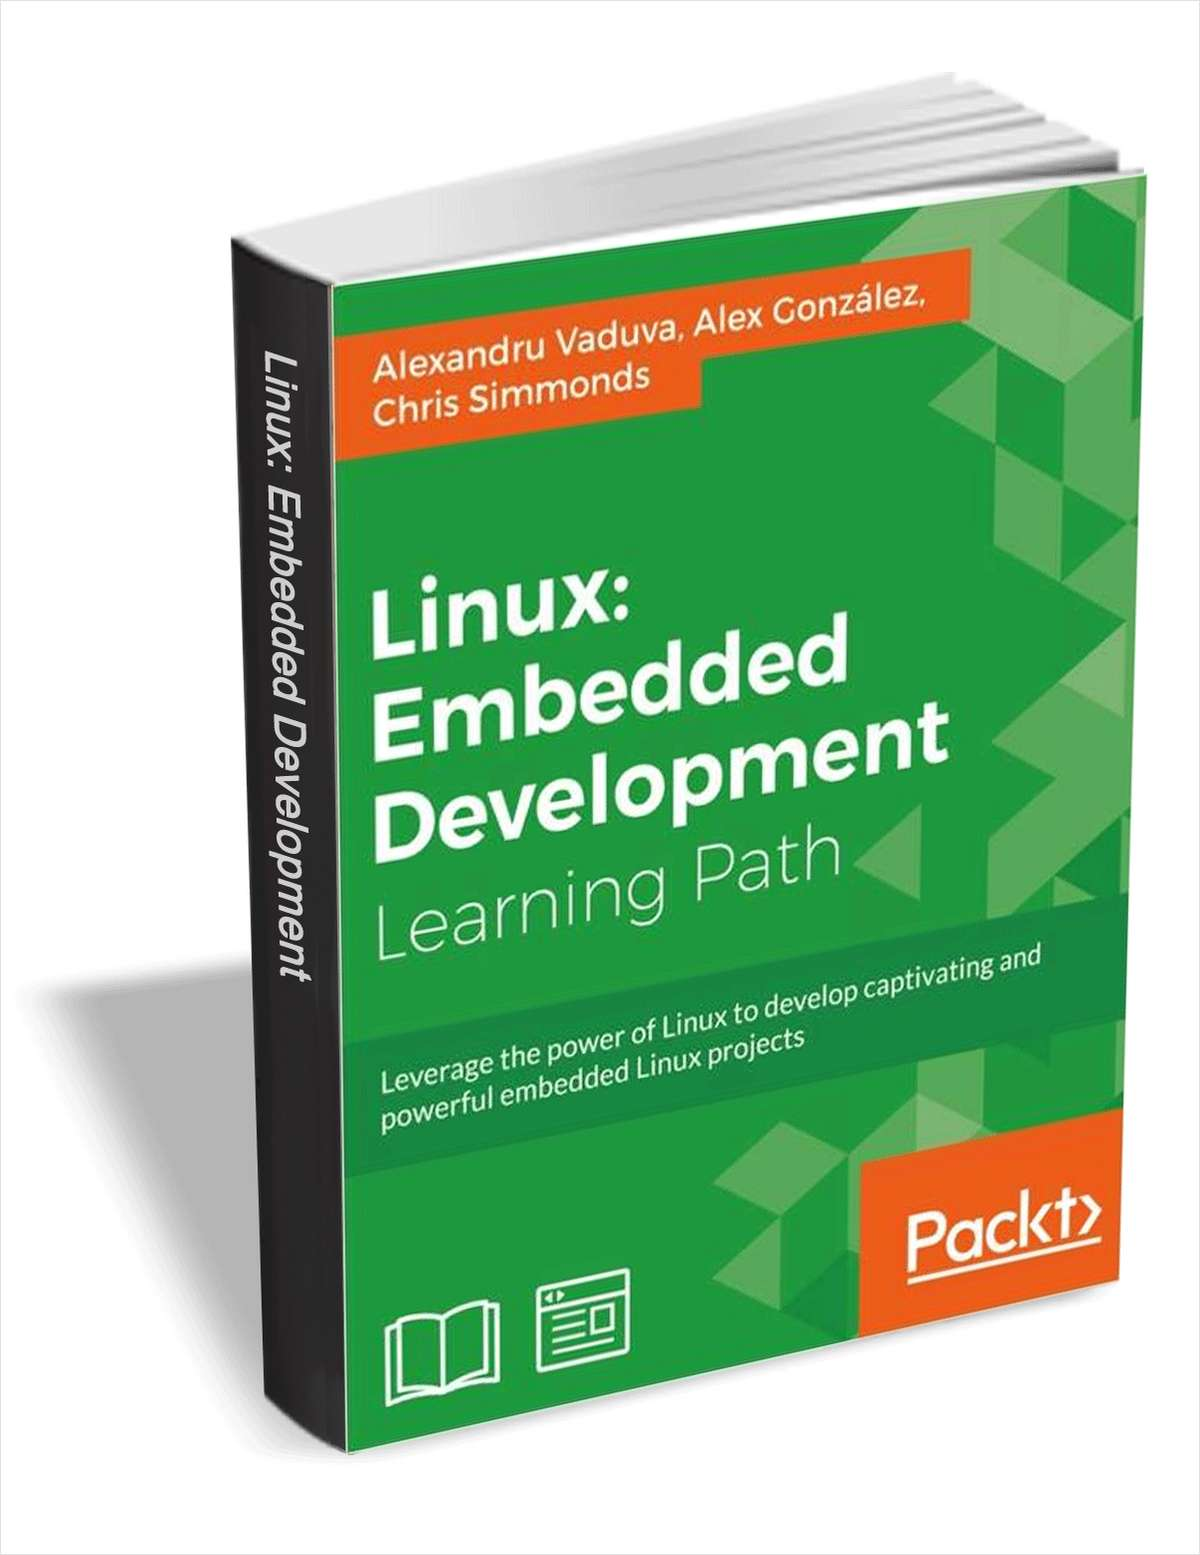 Linux - Embedded Development ($63 Value) FREE For a Limited Time